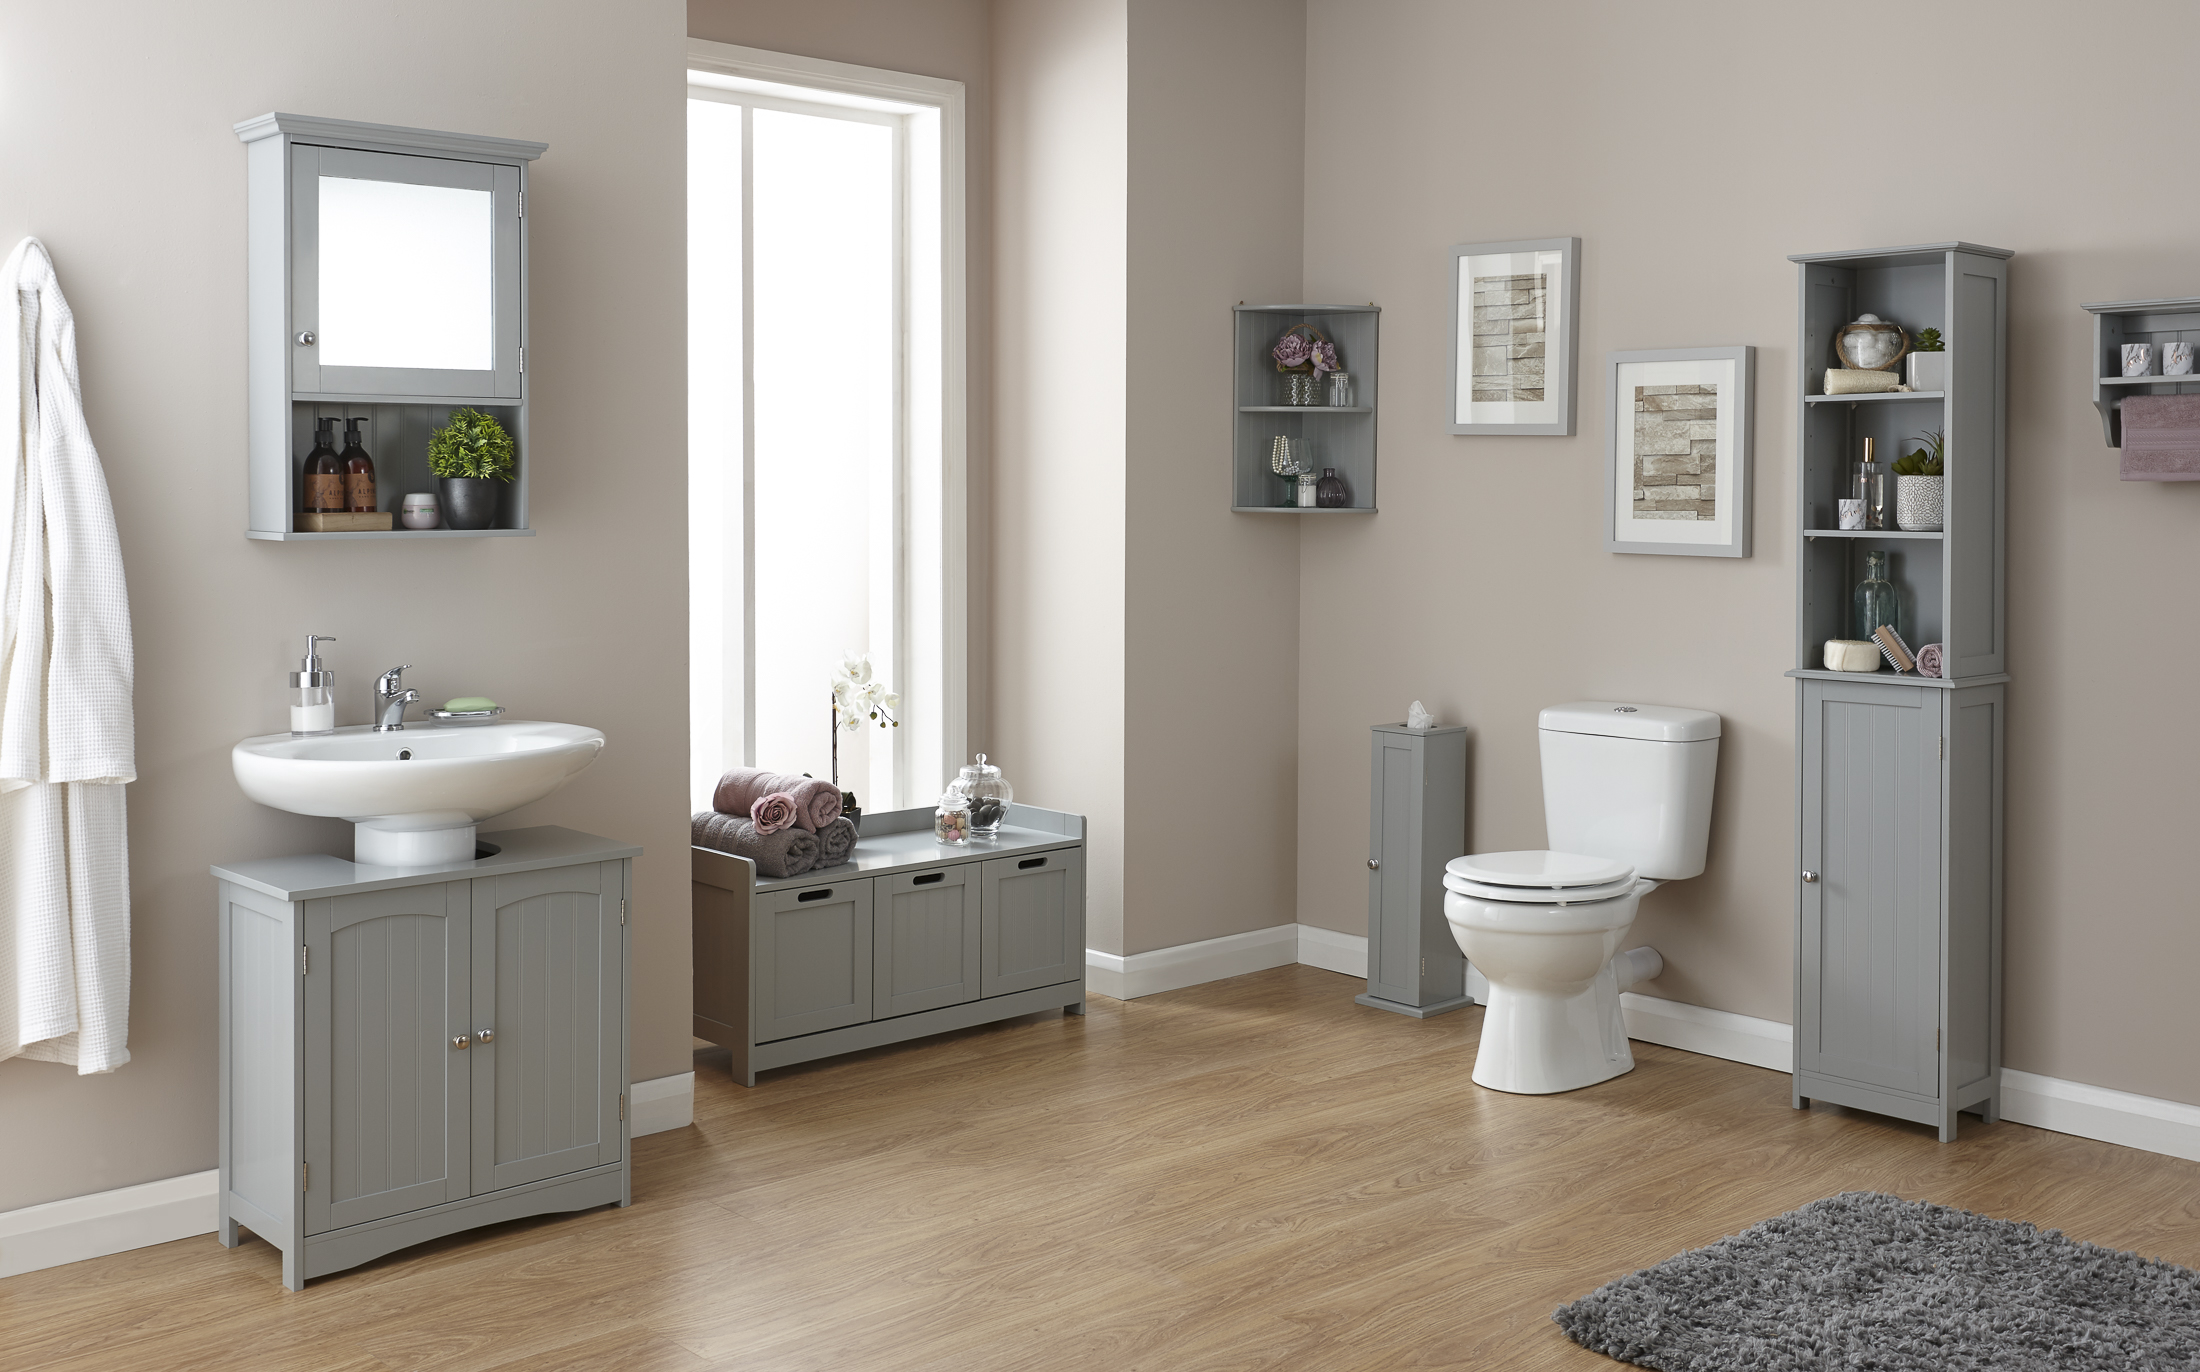 Colonial Grey Tongue Grove Wooden Effect Bathroom Furniture Range